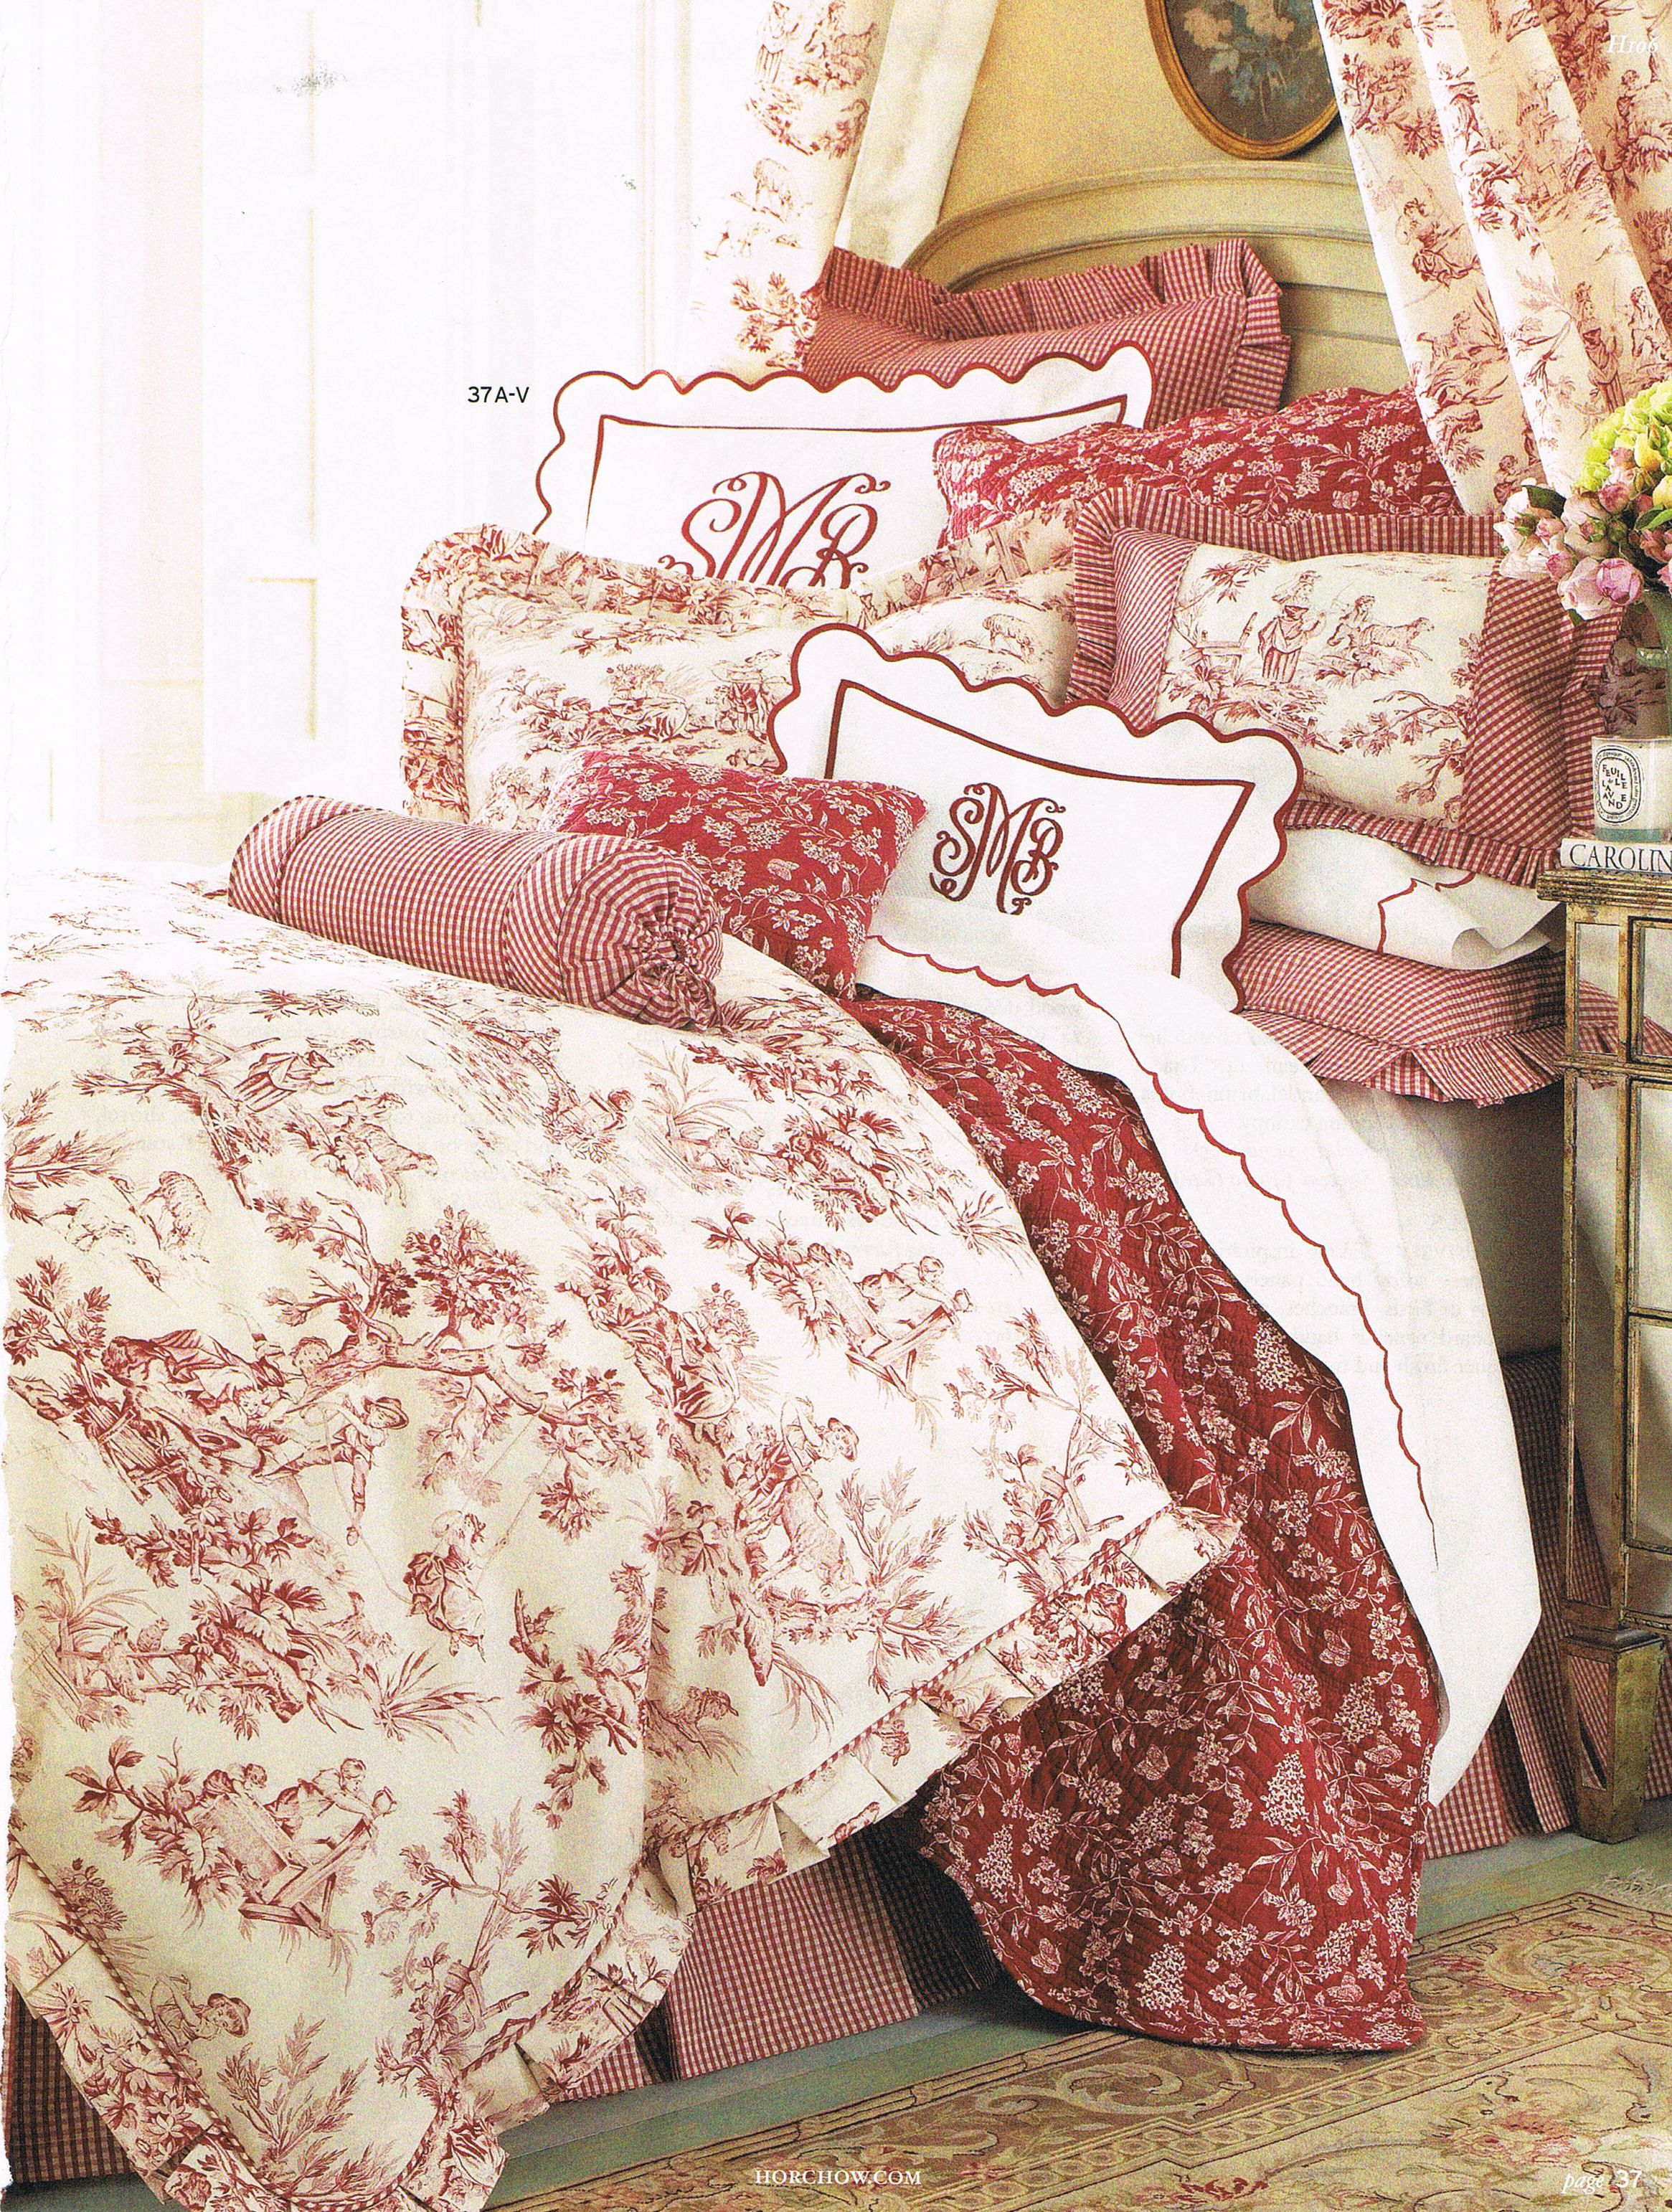 Toile Duvet Cover Red Toile Bedding Pinterest Toile Spare Room And